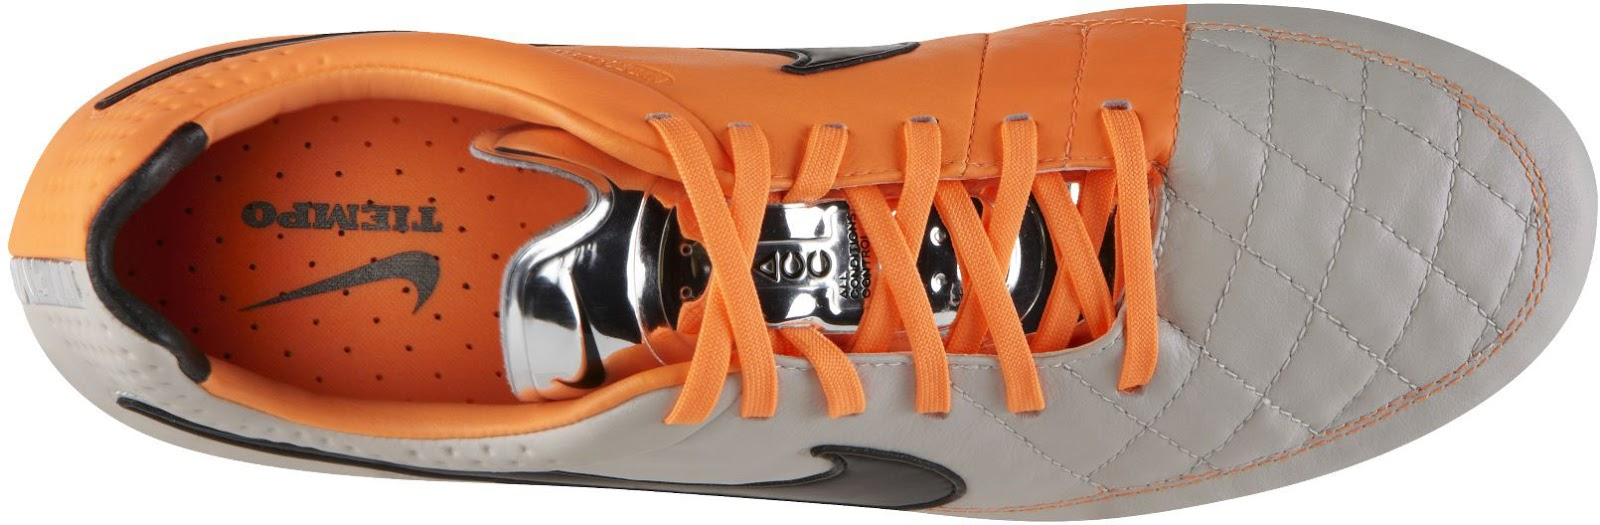 sports shoes 3c366 5e7ec australia nike tiempo legend silver orange 87109 653cc